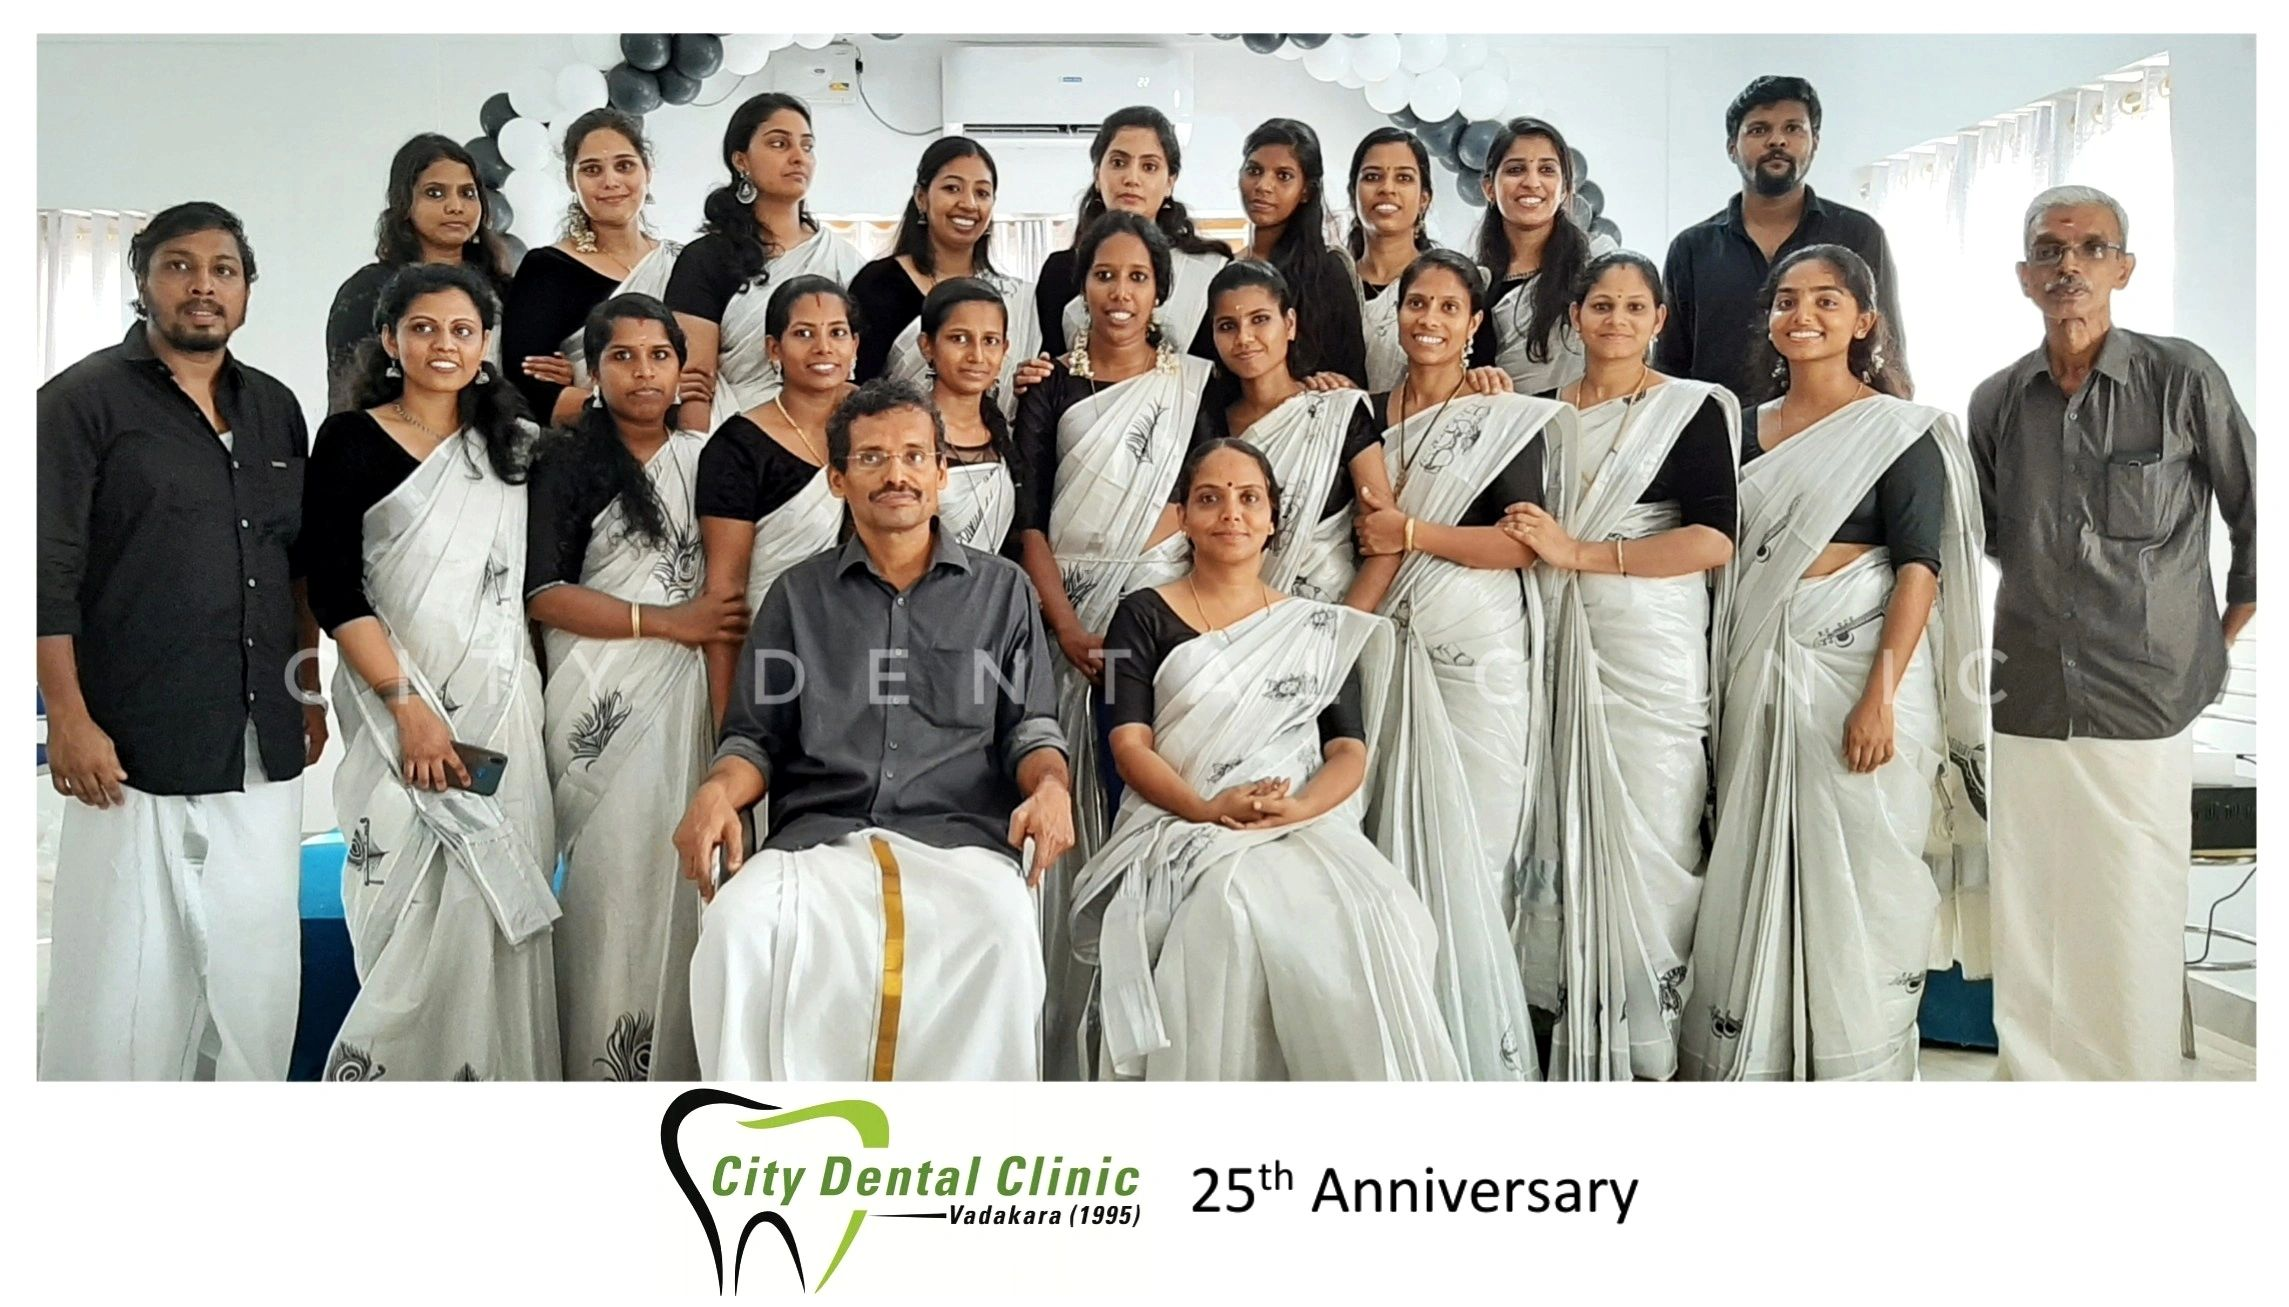 City Dental Clinic Vadakara 25th Anniversary